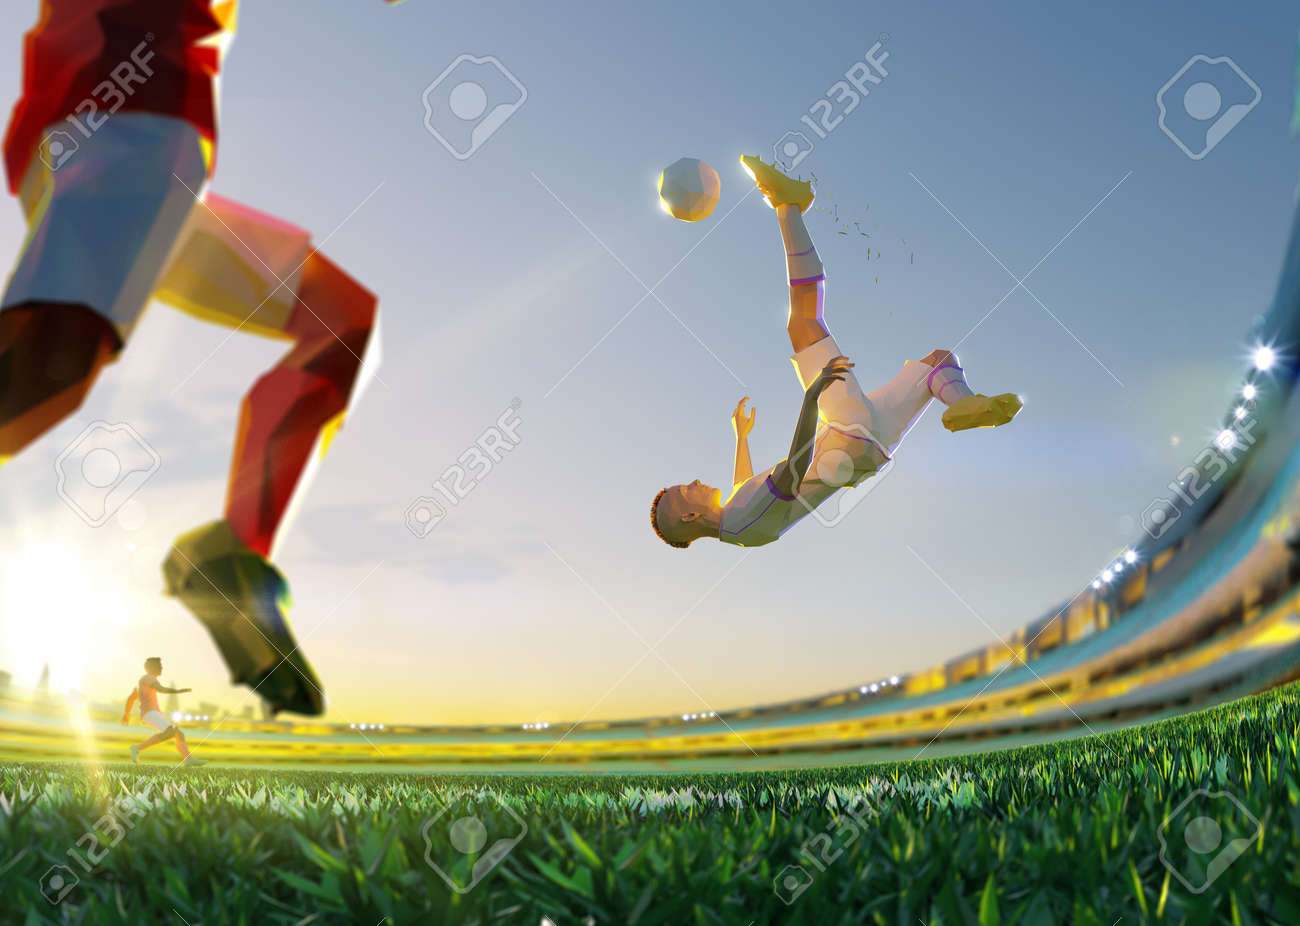 Soccer player in attack. polygon style 3d render illustration - 156788253